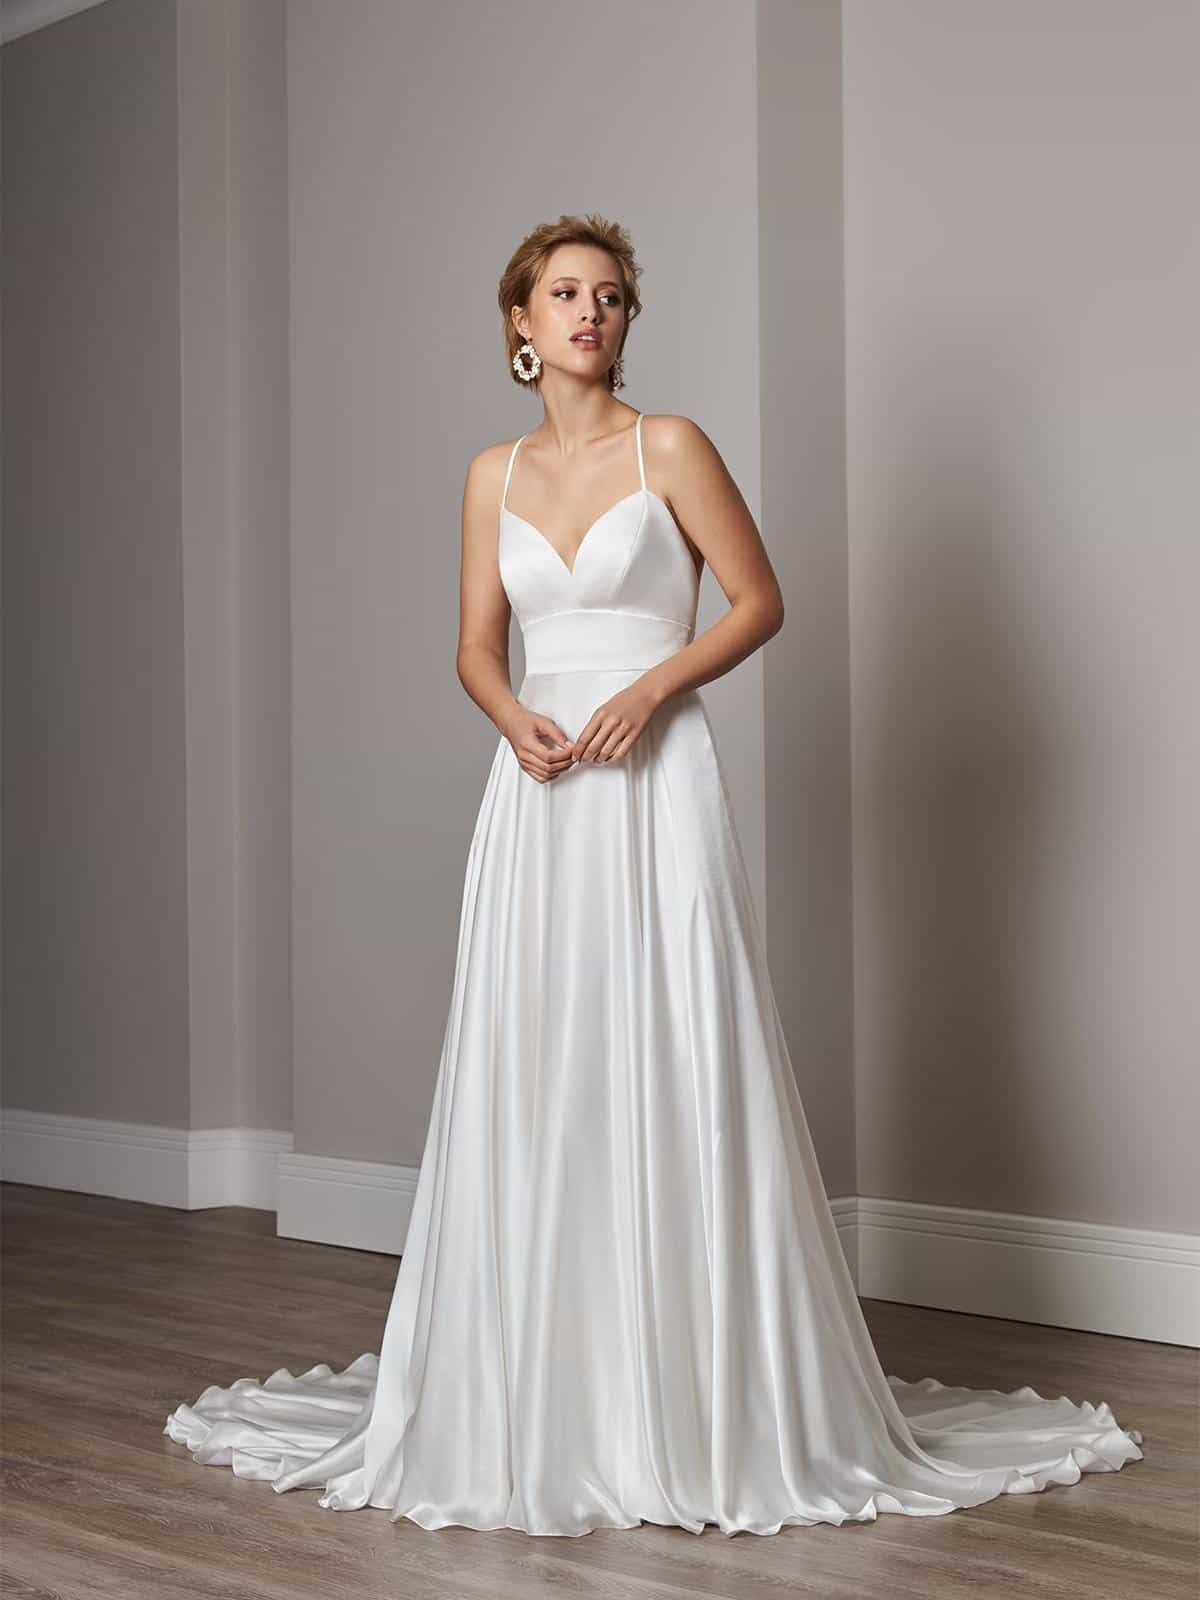 Wedding dress collection: Sassi Holford - Enamour